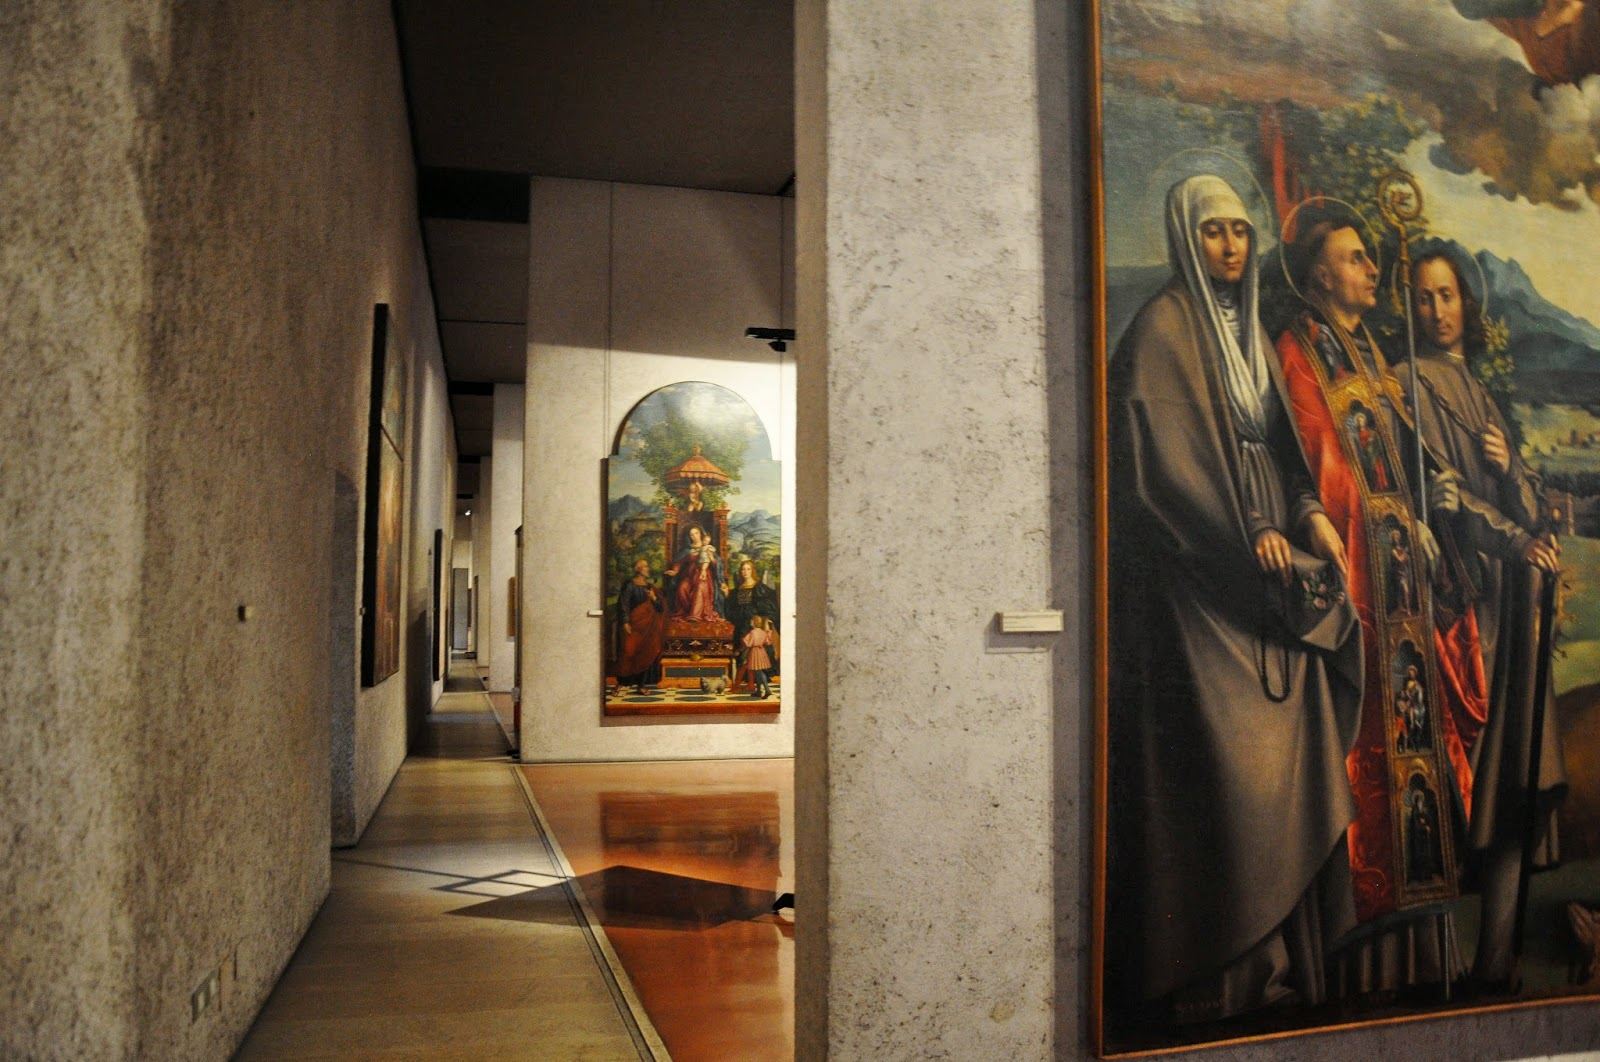 The art gallery of the Museum of Castelvecchio in Verona